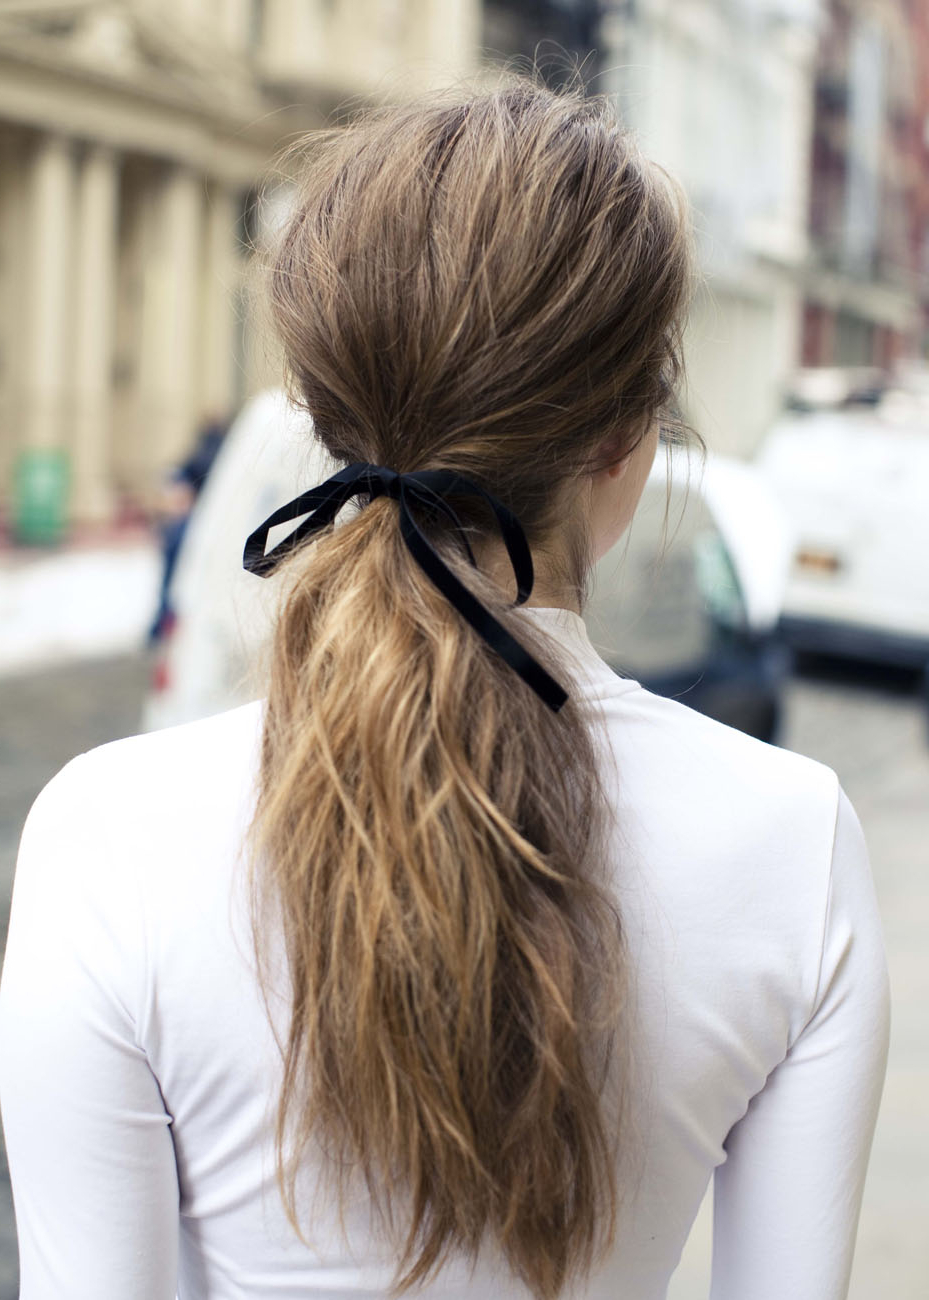 How To Make Even The Simplest Ponytail Pretty – Coveteur Inside Well Known Loosely Tied Braided Hairstyles With A Ribbon (View 14 of 20)